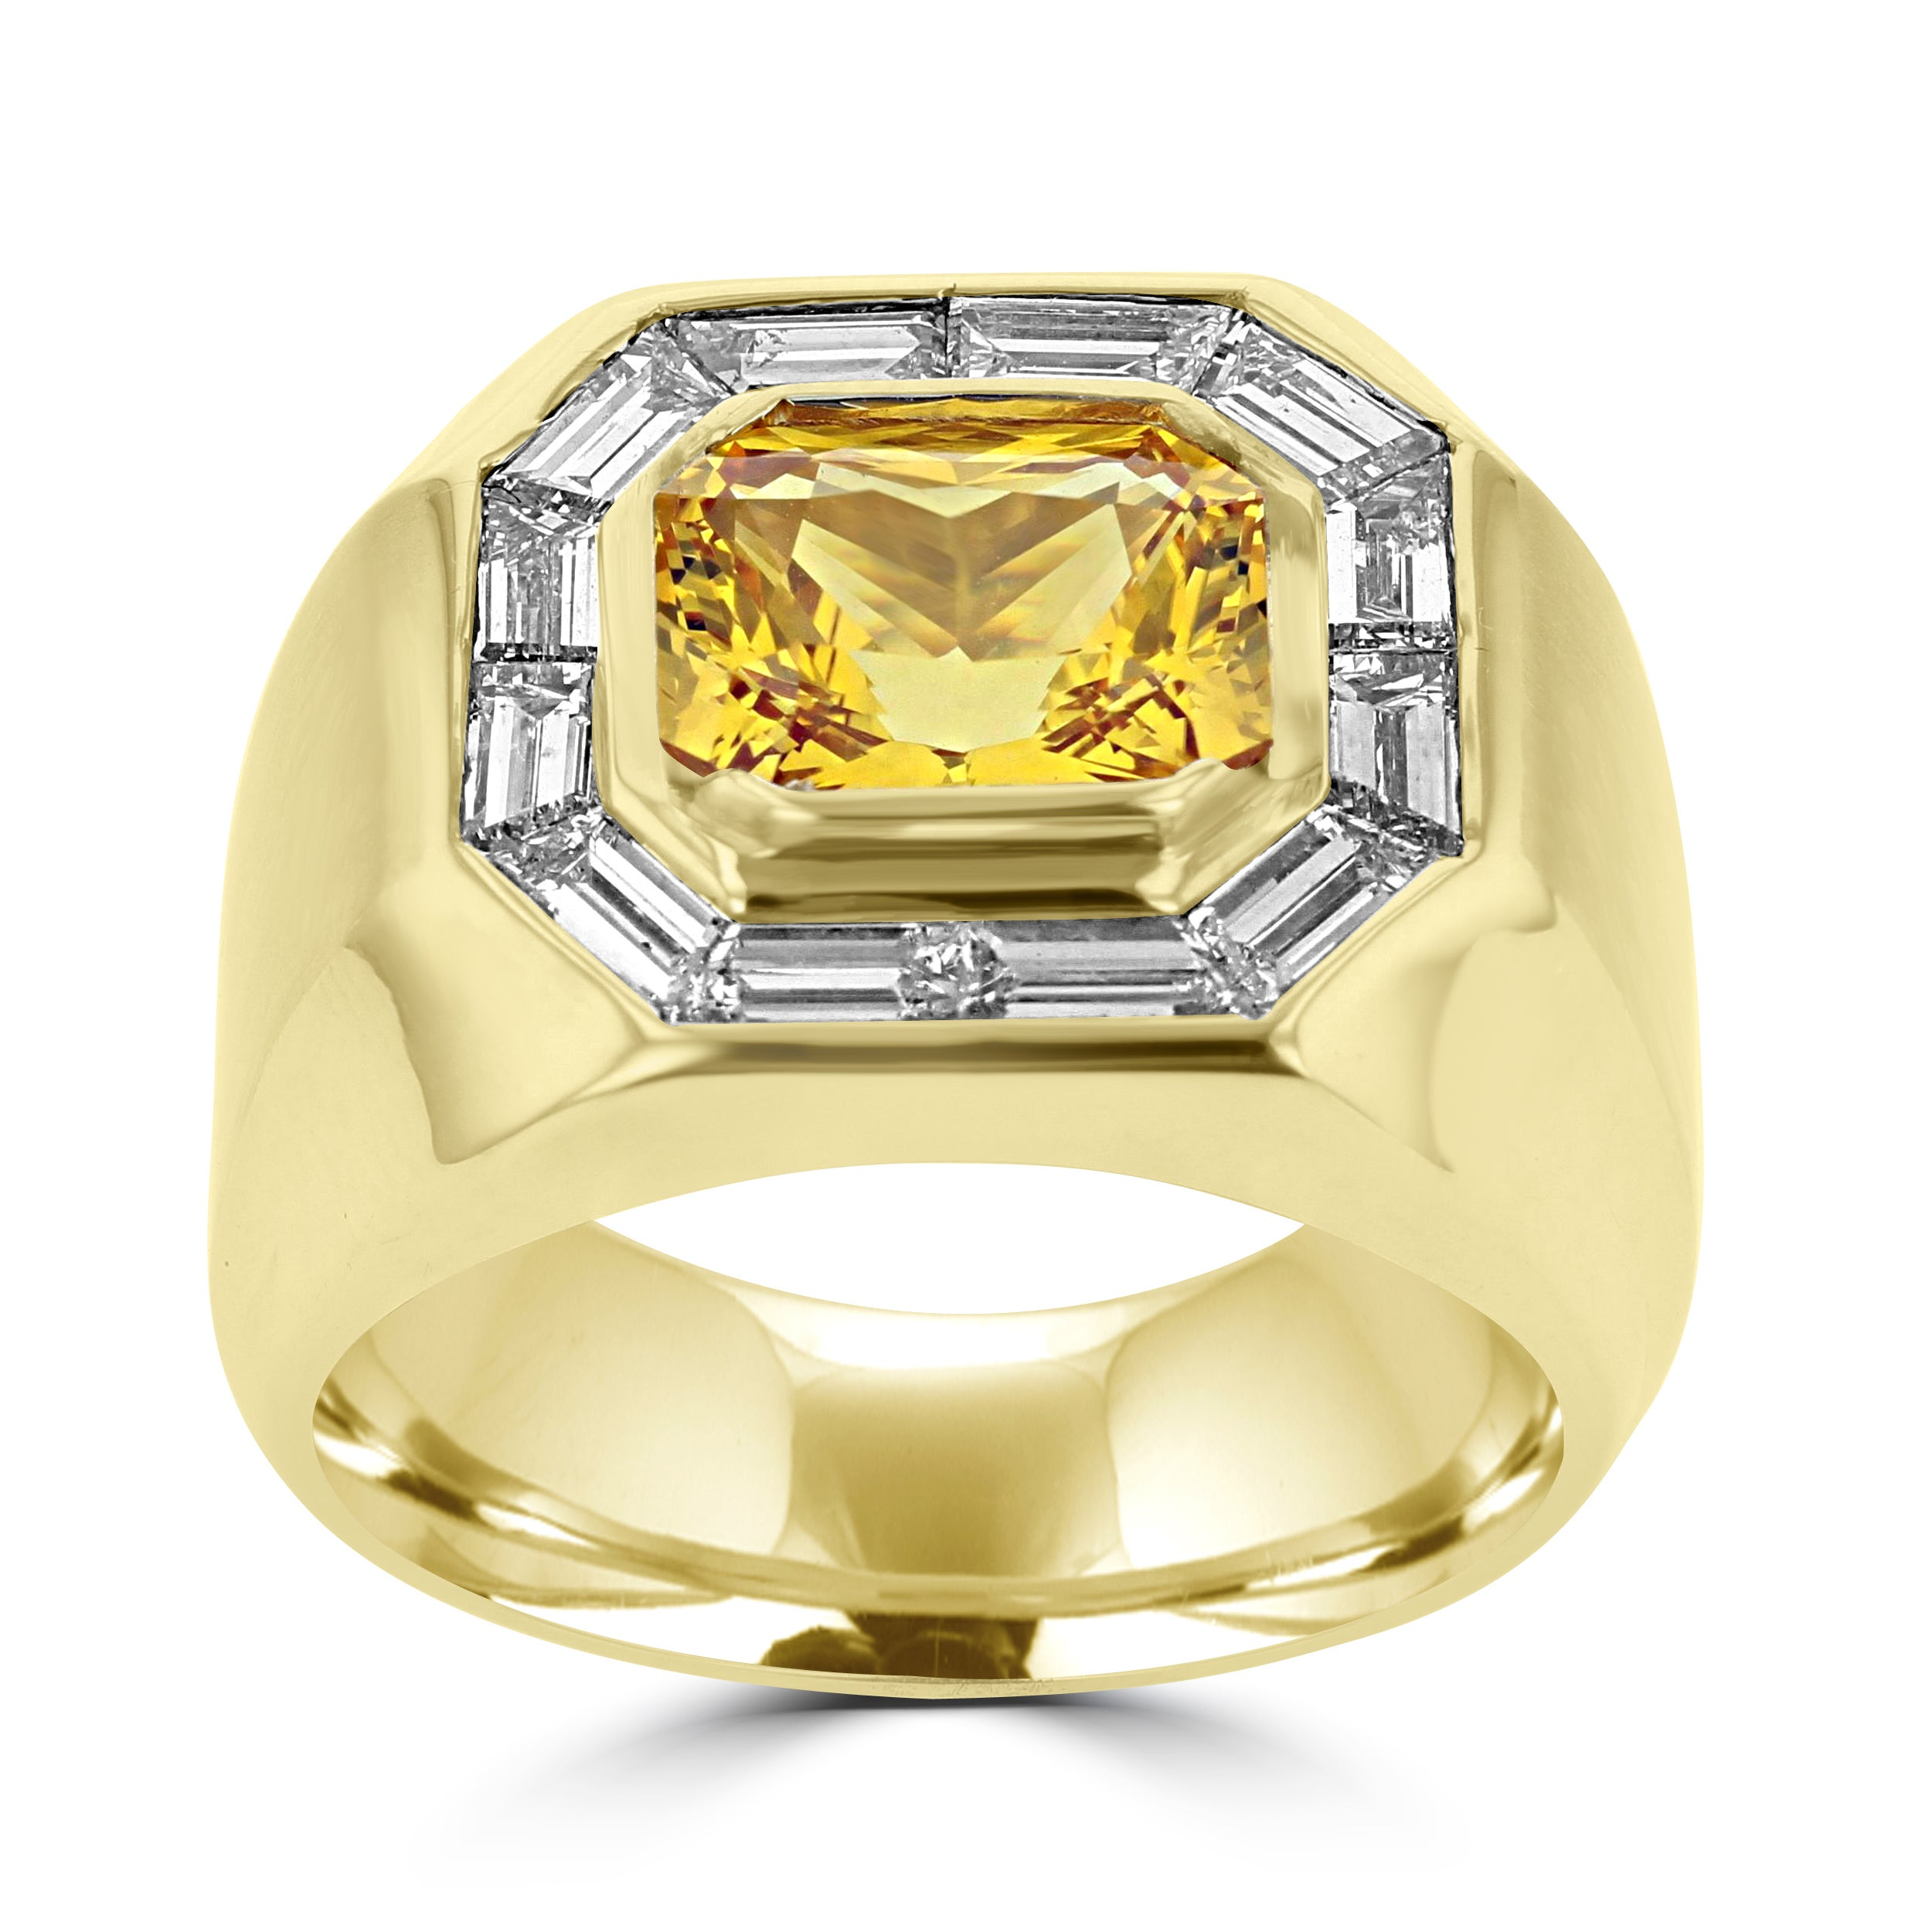 india ring candere mens yellow a kalyan ailbert jewellery jewellers gold company shopping rings online com sapphire